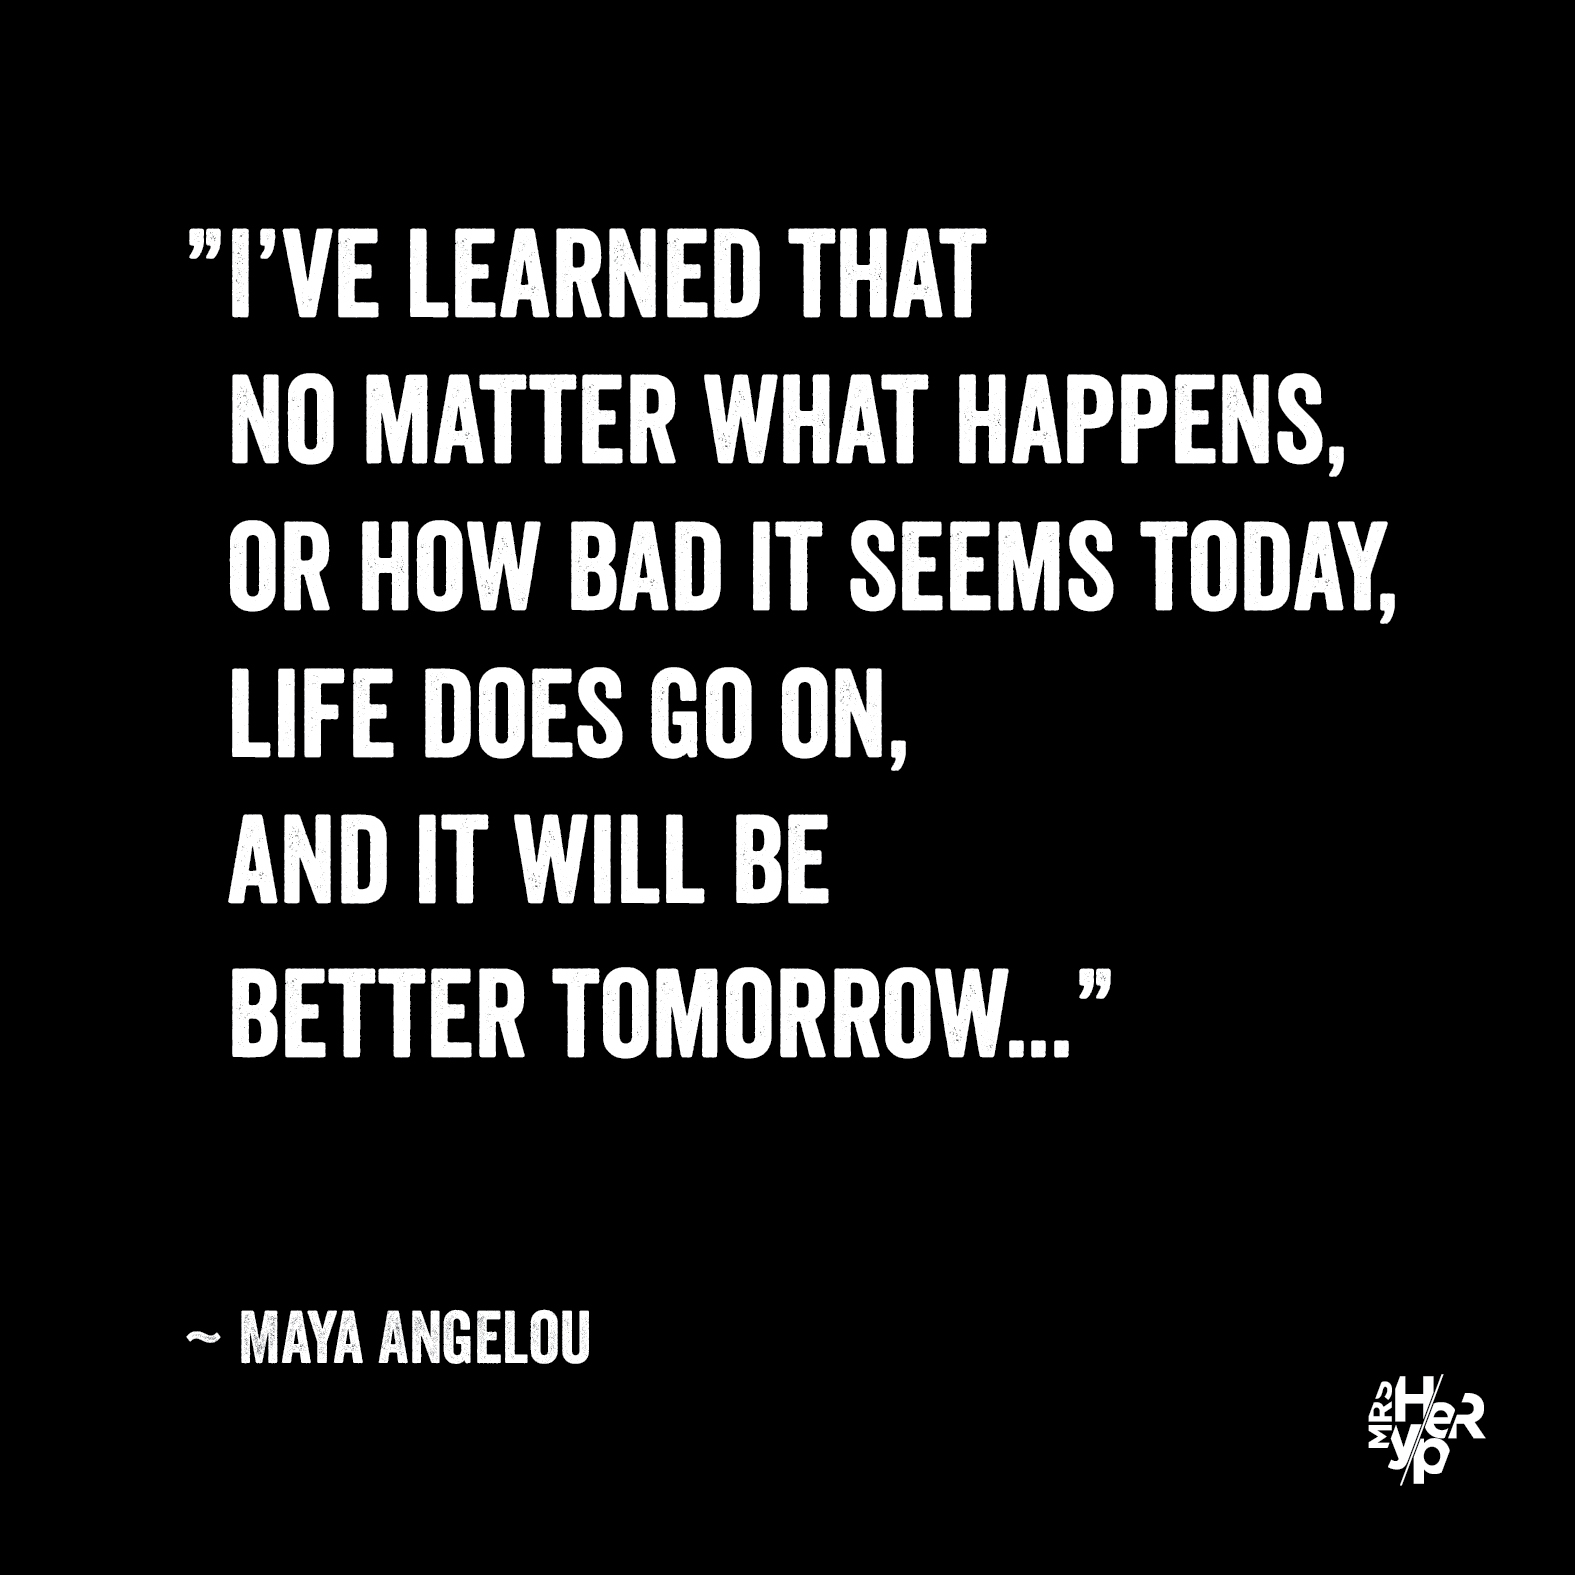 """""""I've learned that no matter what happens, or how bad it seems today, life does go on, and it will be better tomorrow..."""" ~ Maya Angelou"""